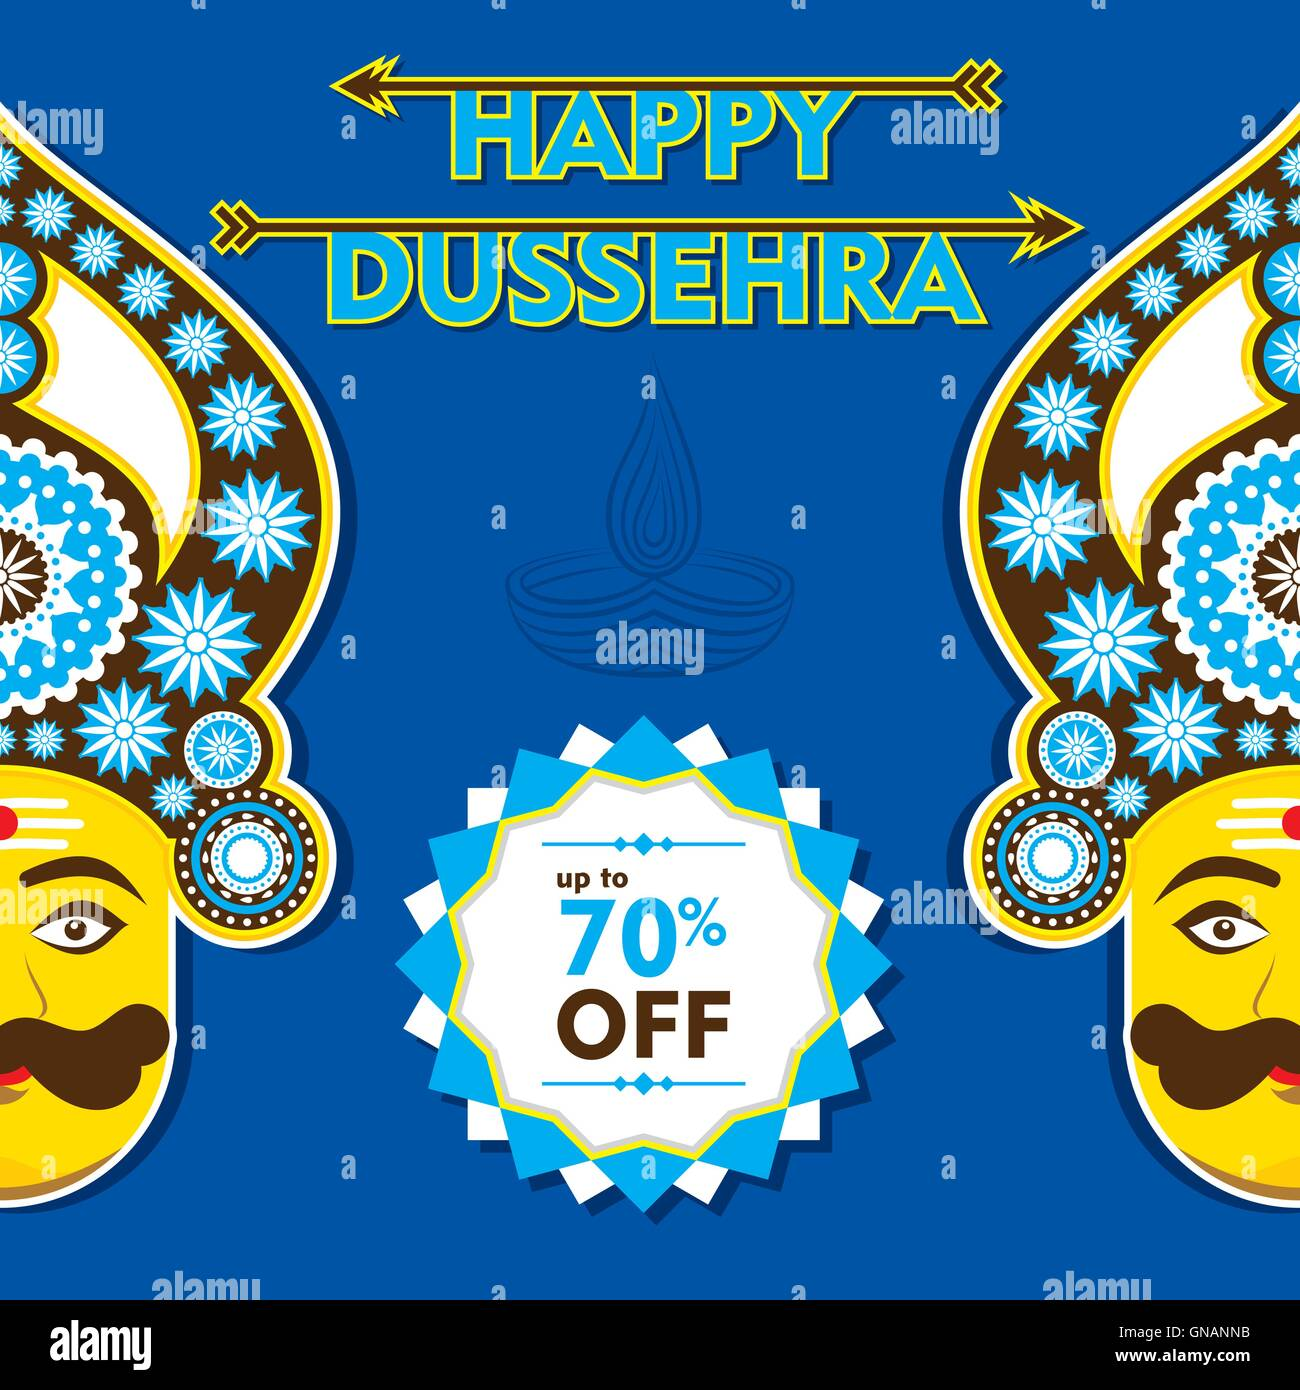 Happy dussehra greeting card or poster design stock vector art happy dussehra greeting card or poster design kristyandbryce Choice Image